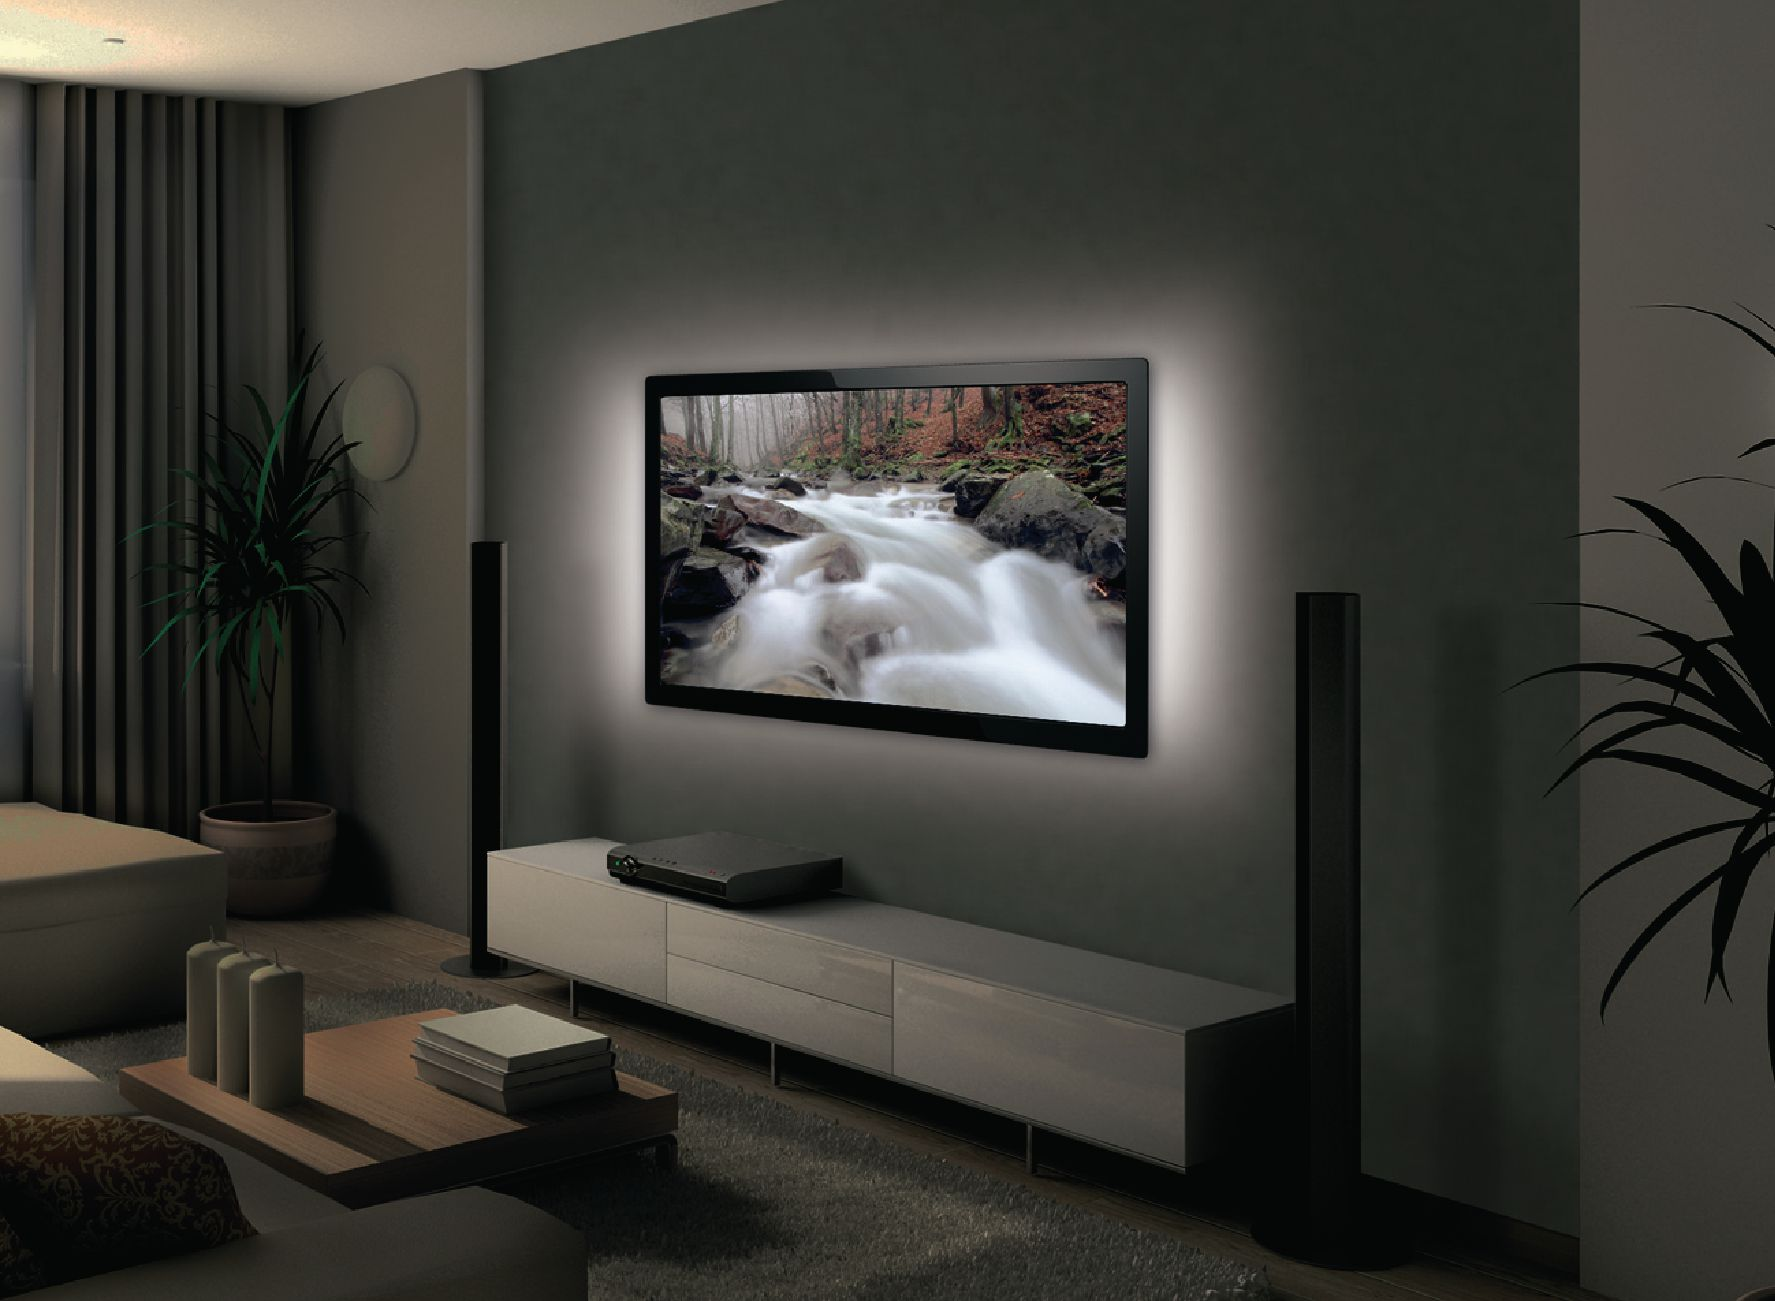 led tv hintergrundbeleuchtung weiss komplettset bis 127cm. Black Bedroom Furniture Sets. Home Design Ideas